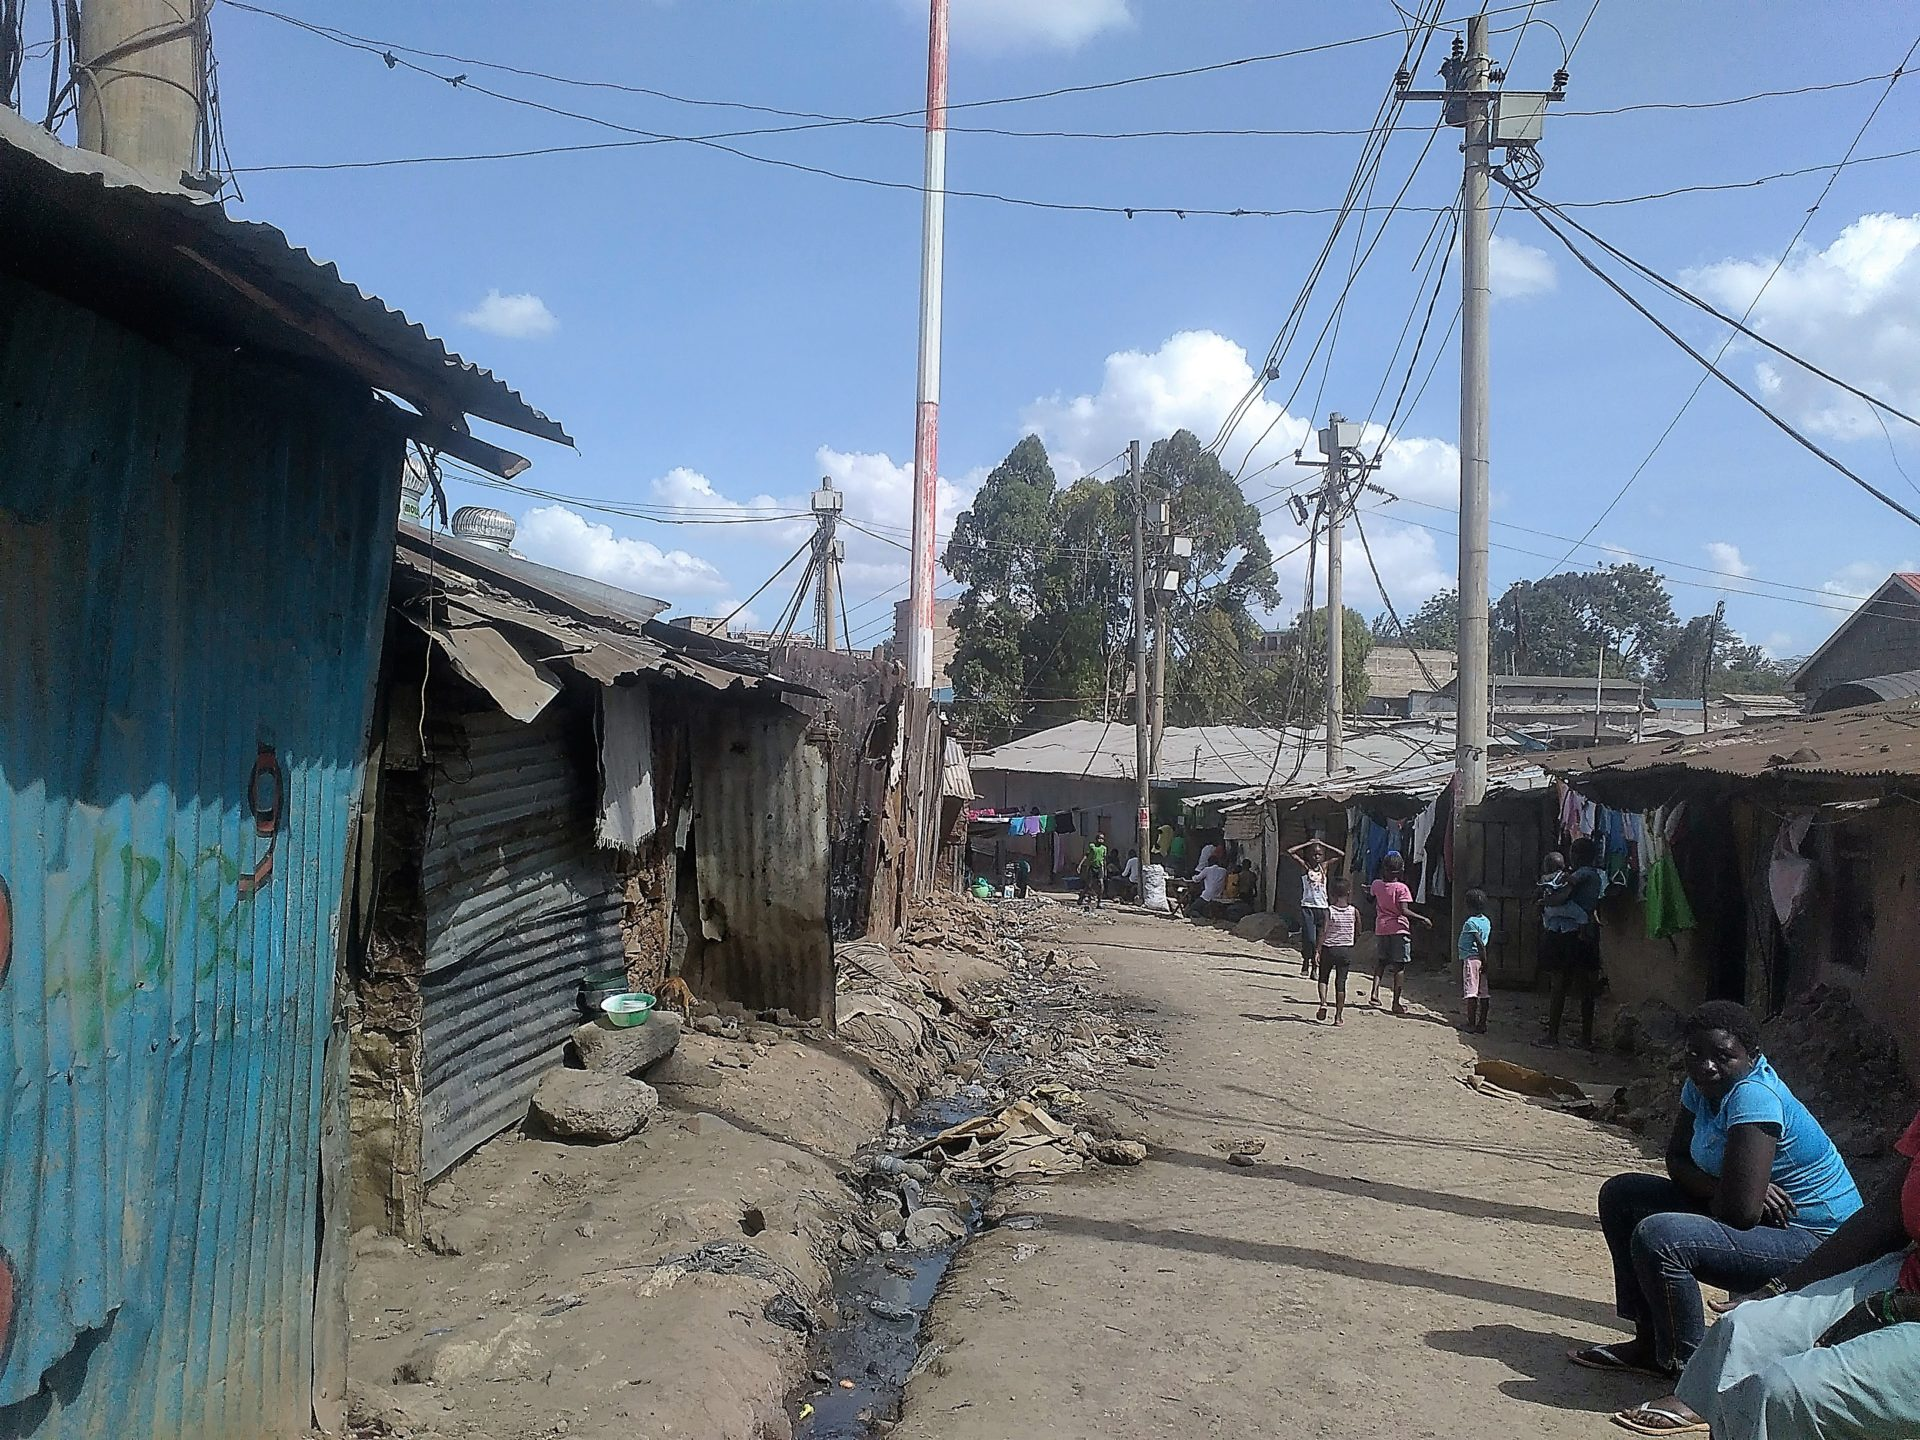 The main street MATHARE 4B